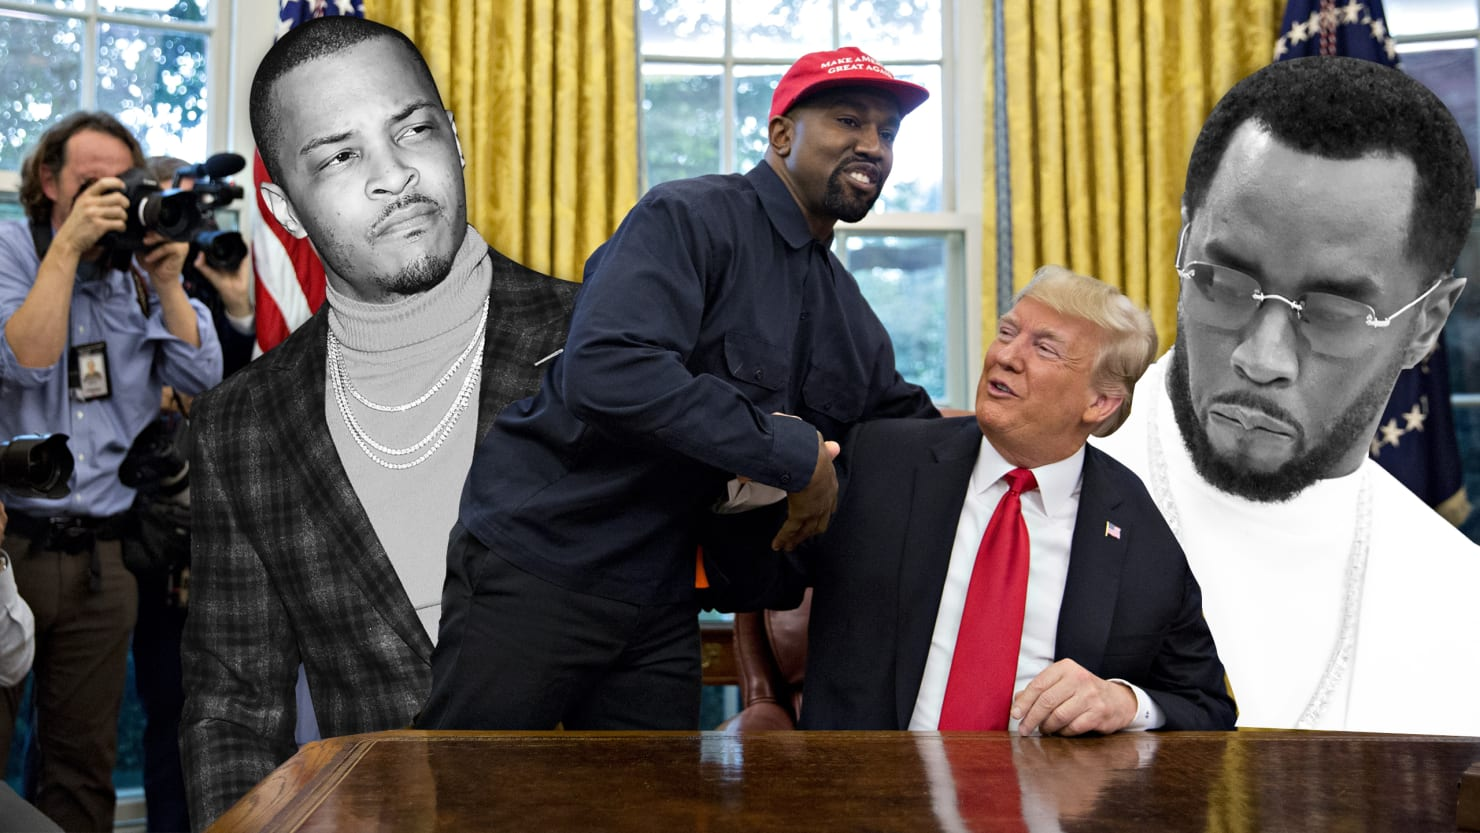 Diddy, T.I. and Other Hip-Hop Legends Blast Kanye for Trump White House Summit